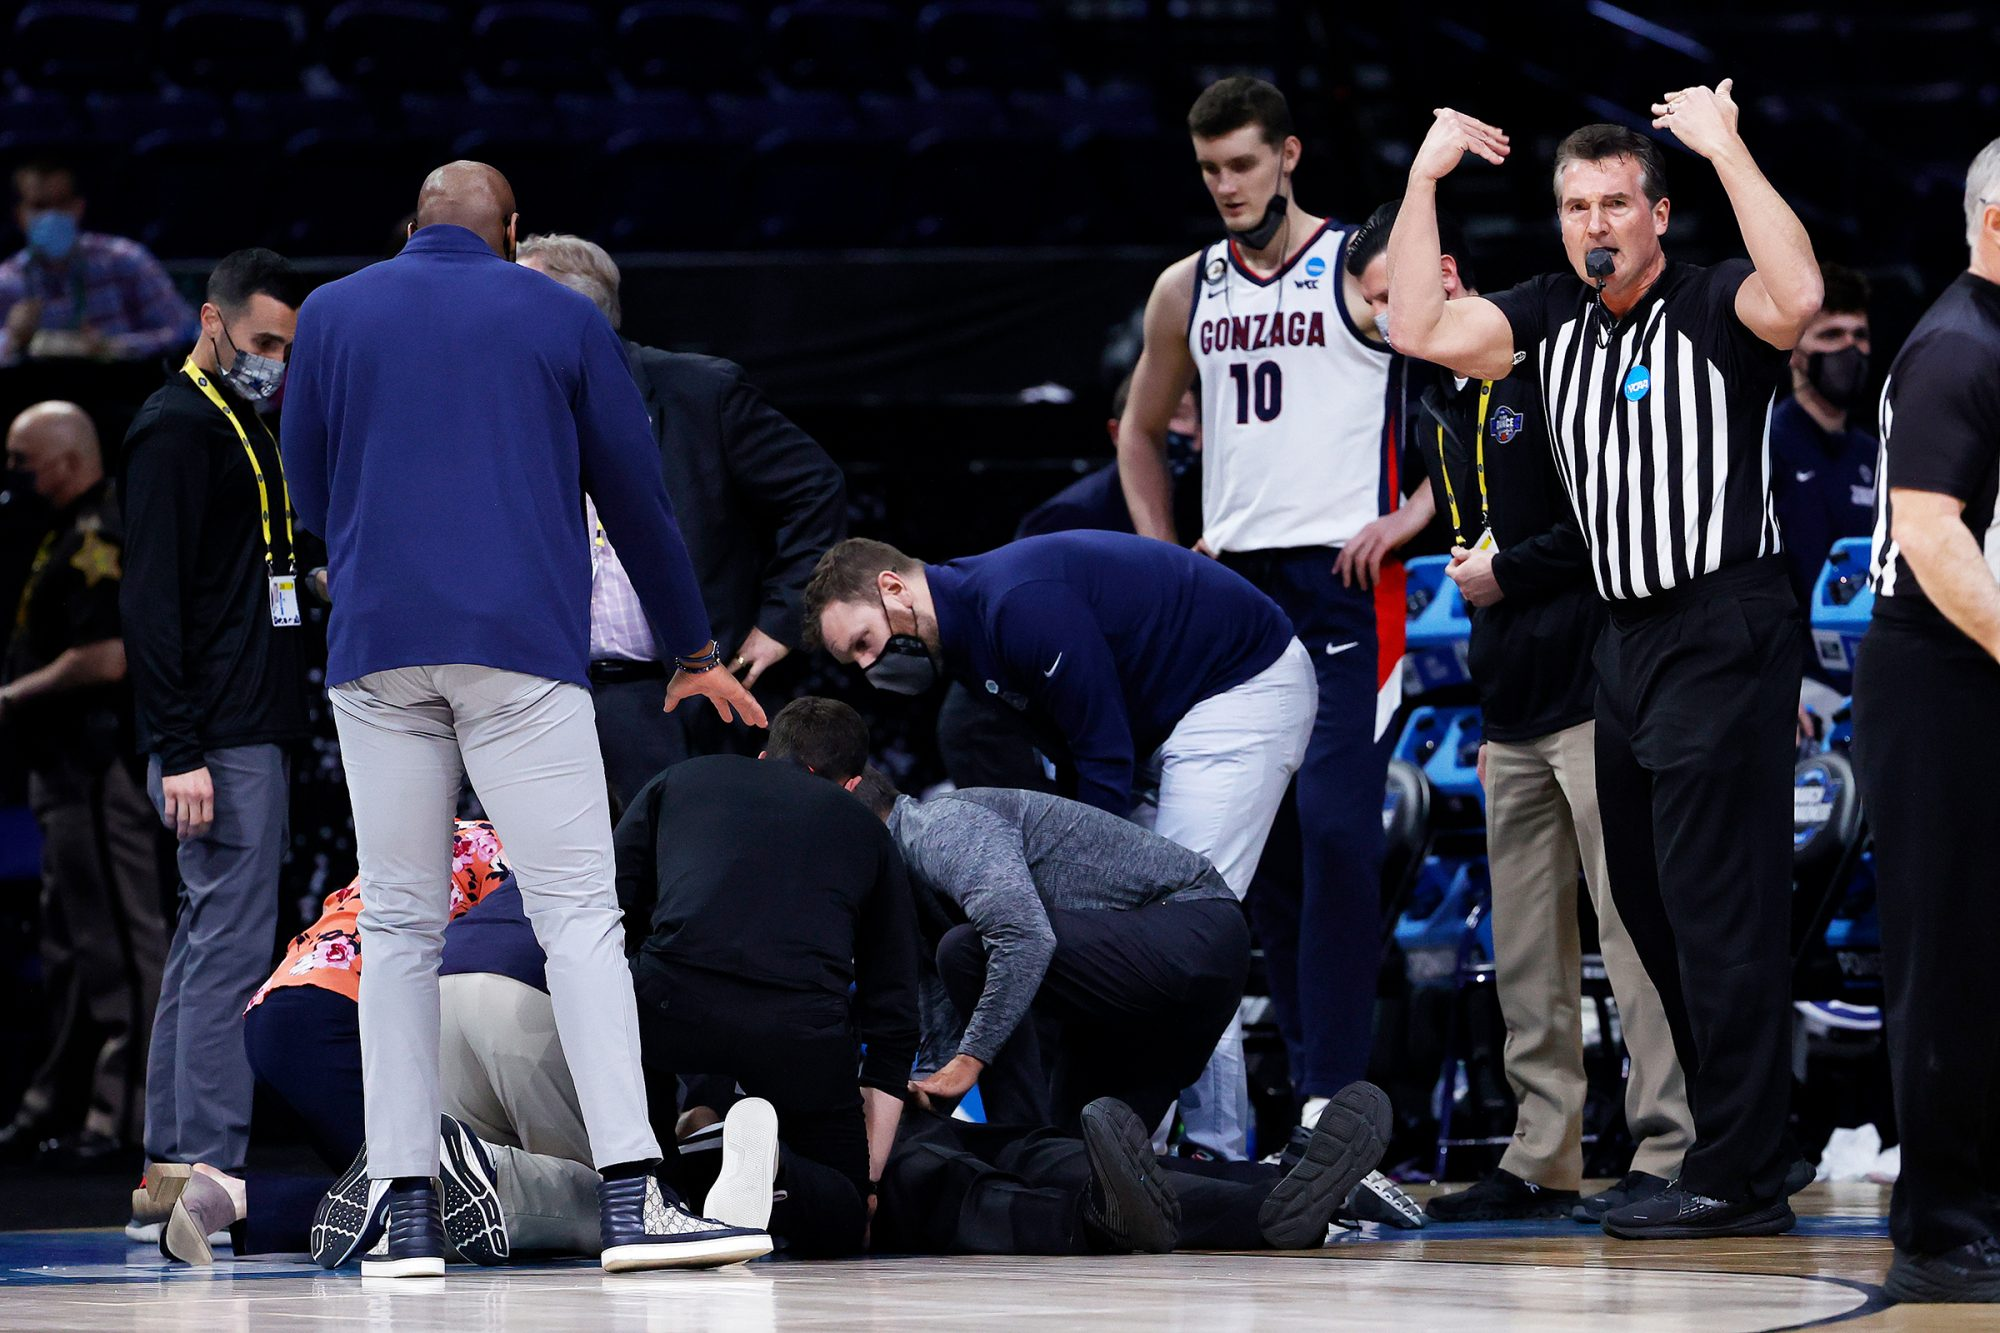 Referee Bert Smith is tended to by training staff and medical personnel after collapsing during the first half of the Elite Eight round game between the USC Trojans and the Gonzaga Bulldogs during the 2021 NCAA Men's Basketball Tournament at Lucas Oil Stadium on March 30, 2021